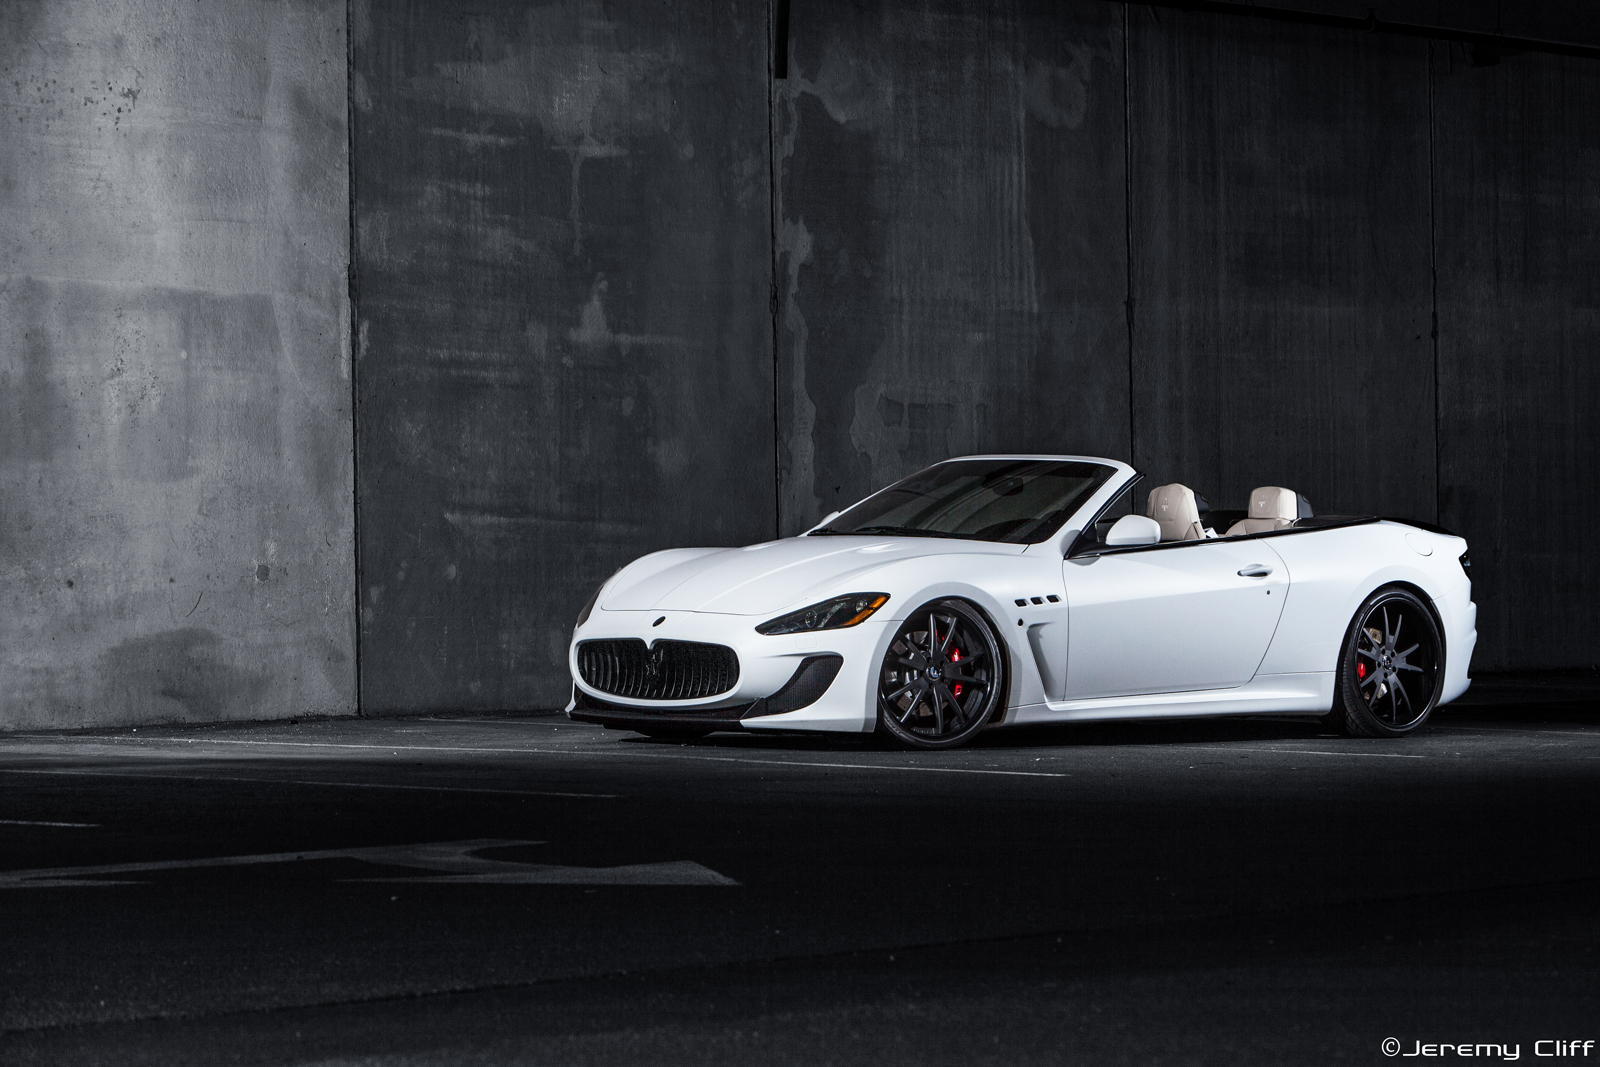 maserati-granturismo-convertible-white-wallpaper-5.jpg